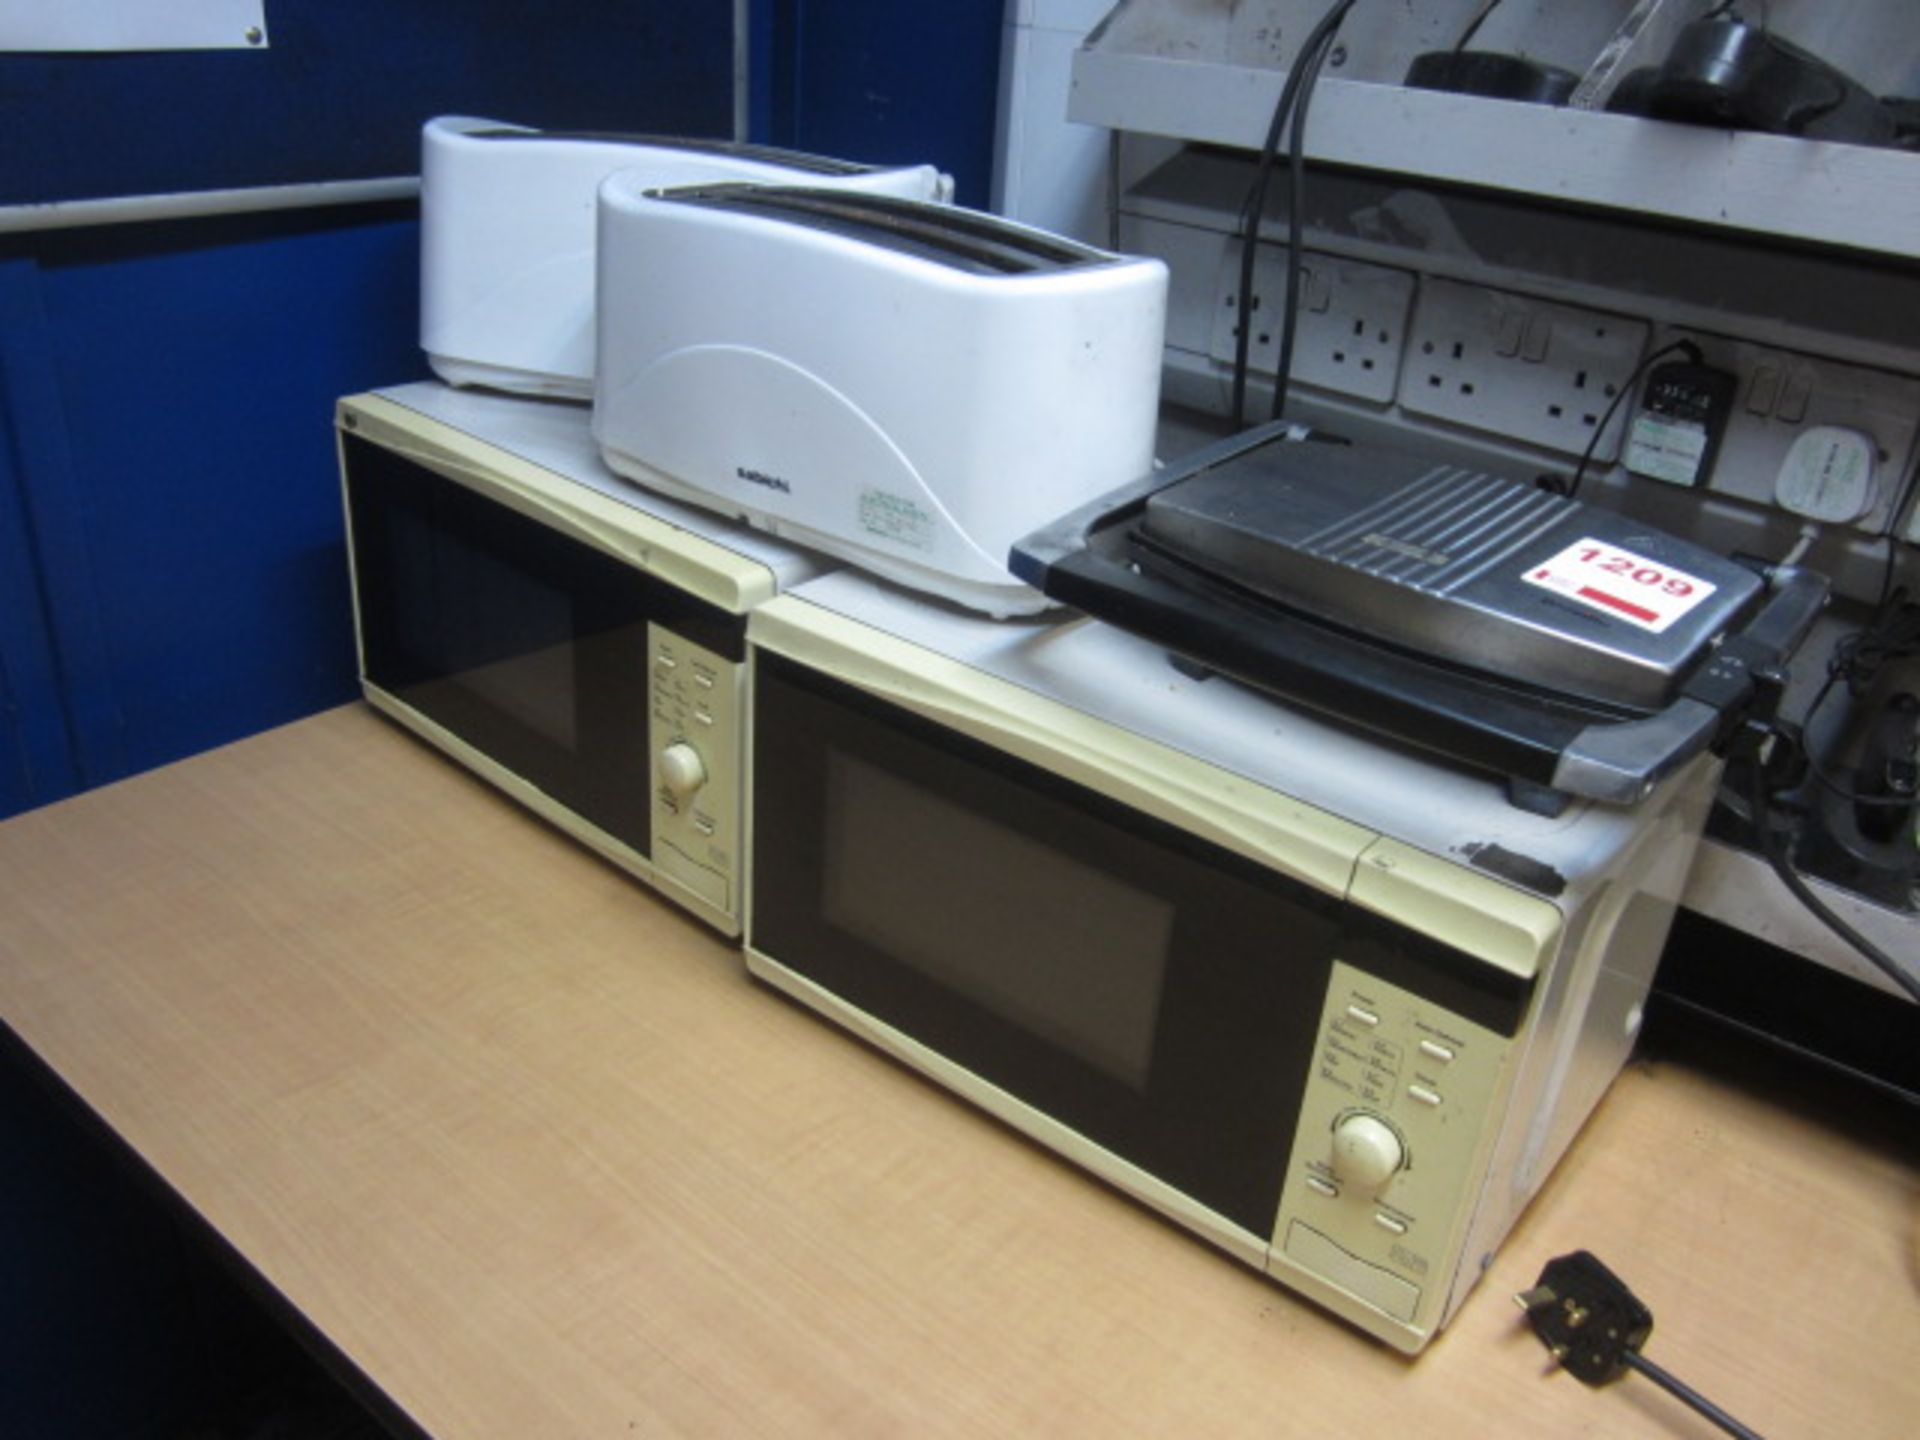 Lot 1209 - Two microwaves, two Sabichi 2 slice toasters, Breville maker